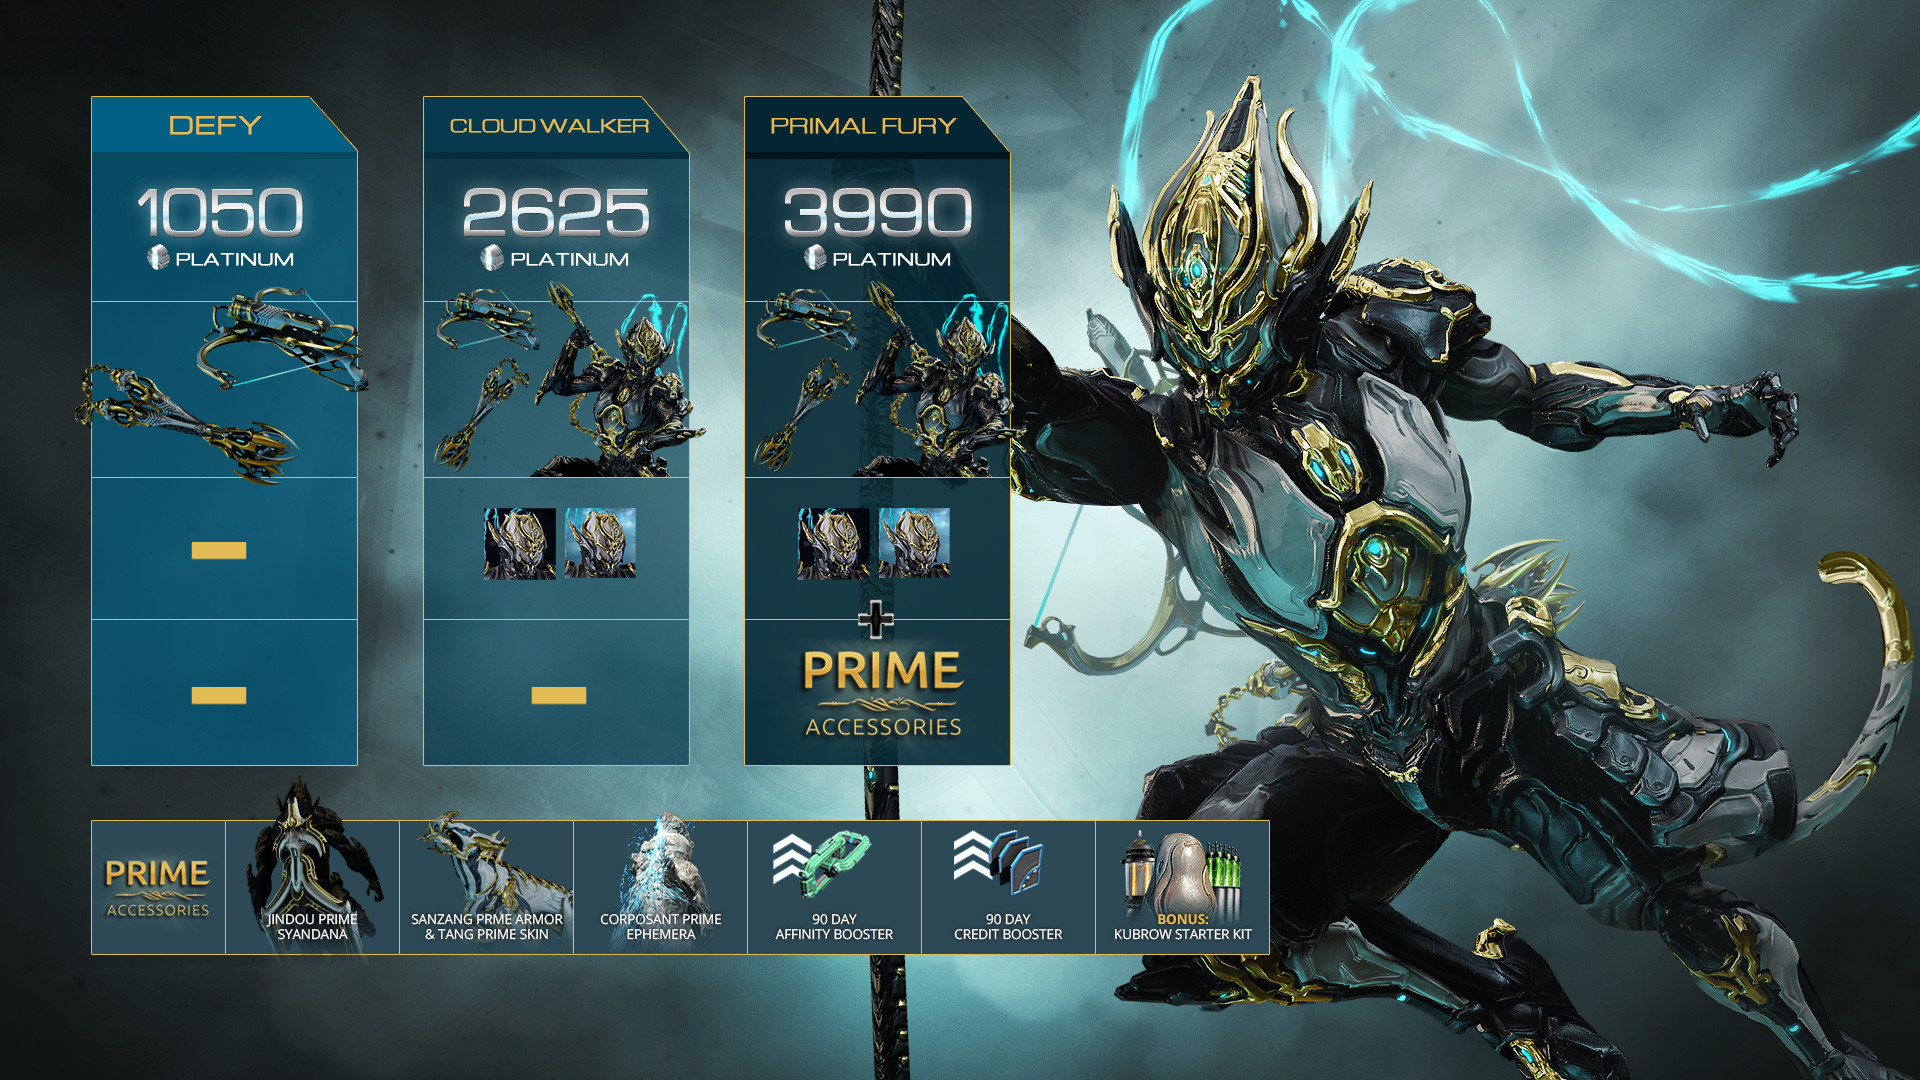 Warframe Wukong Prime Access: Defy Pack